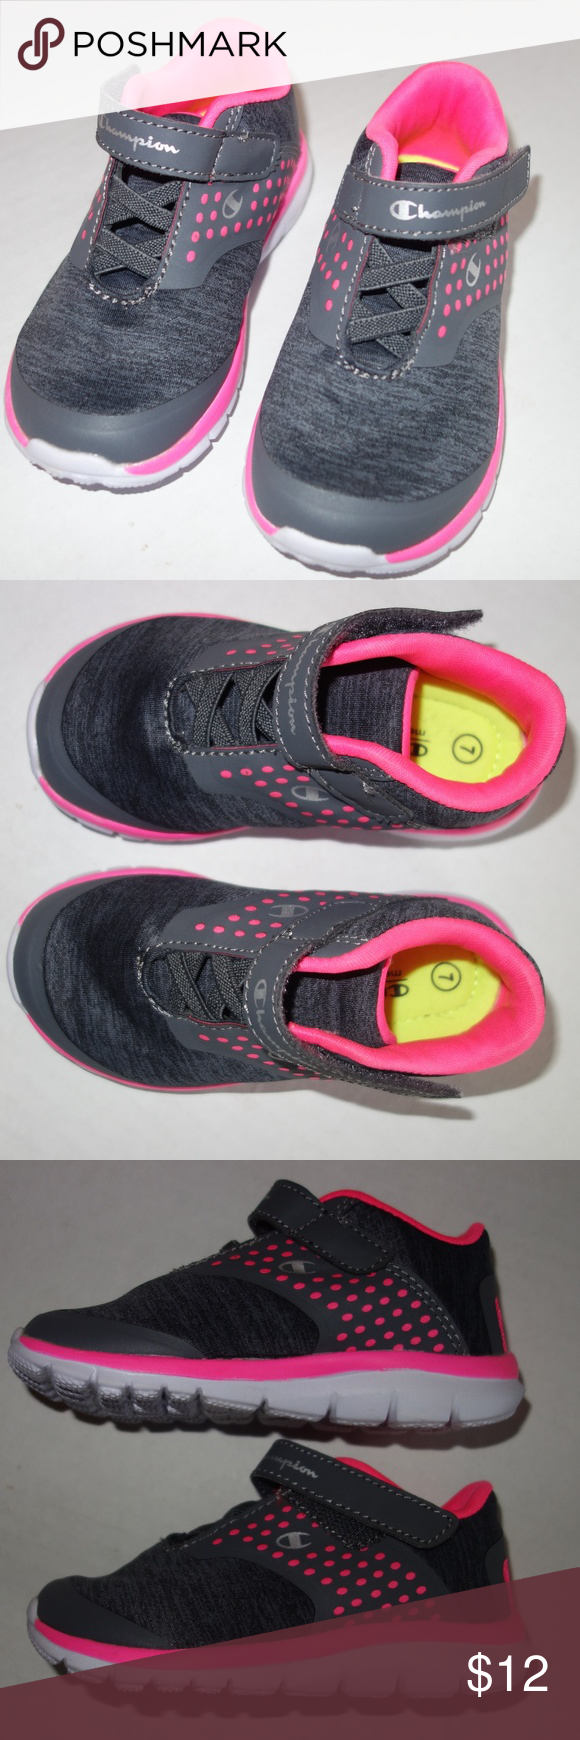 df537b8b804f Champion Athletic Shoes Sneakers Girl 7 Pink Gray Champion Athletic Shoes  Sneakers Girl 7 Pink Gray